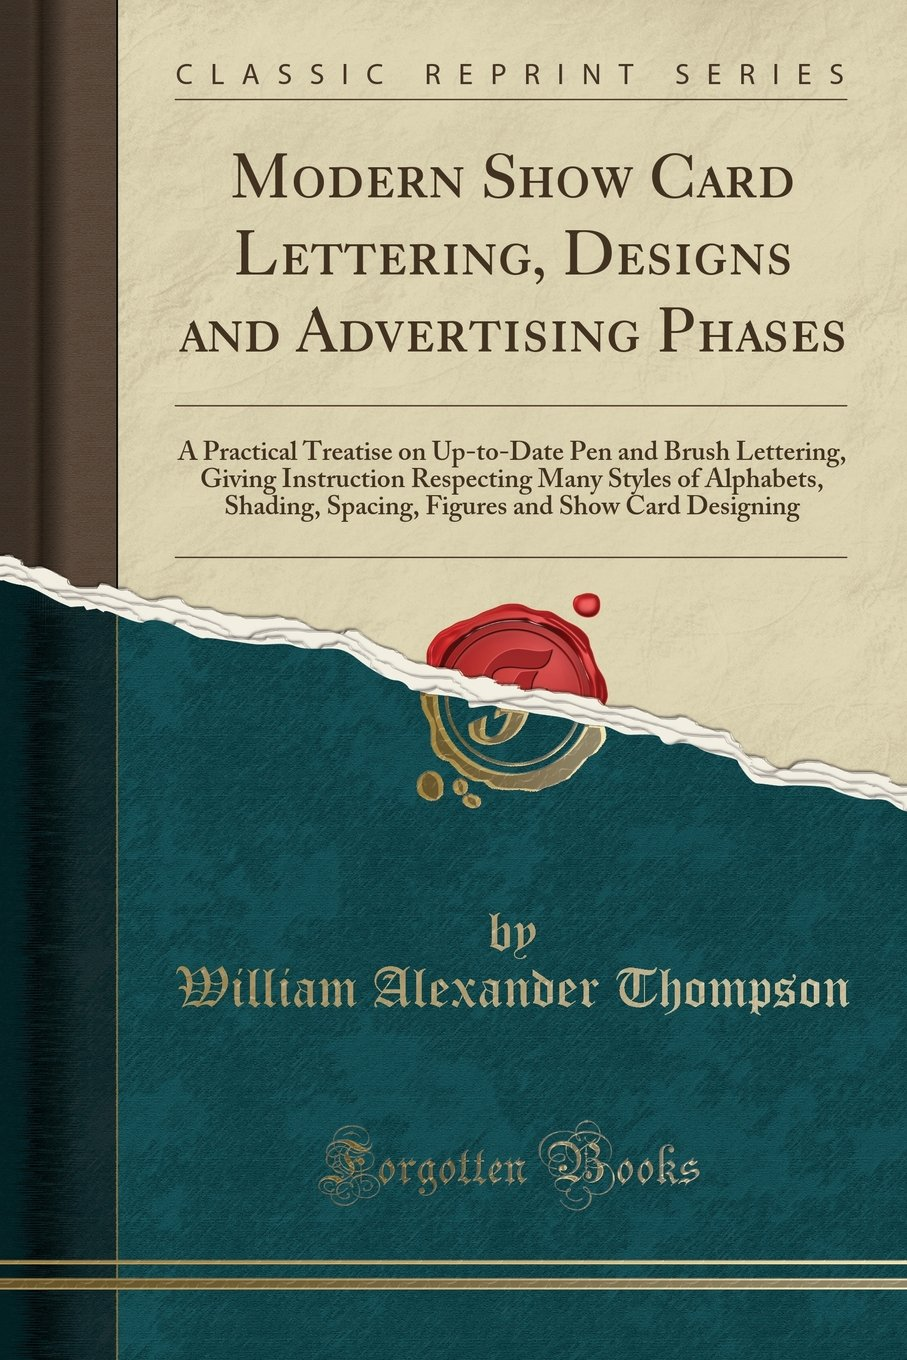 Download Modern Show Card Lettering, Designs and Advertising Phases: A Practical Treatise on Up-to-Date Pen and Brush Lettering, Giving Instruction Respecting ... and Show Card Designing (Classic Reprint) PDF